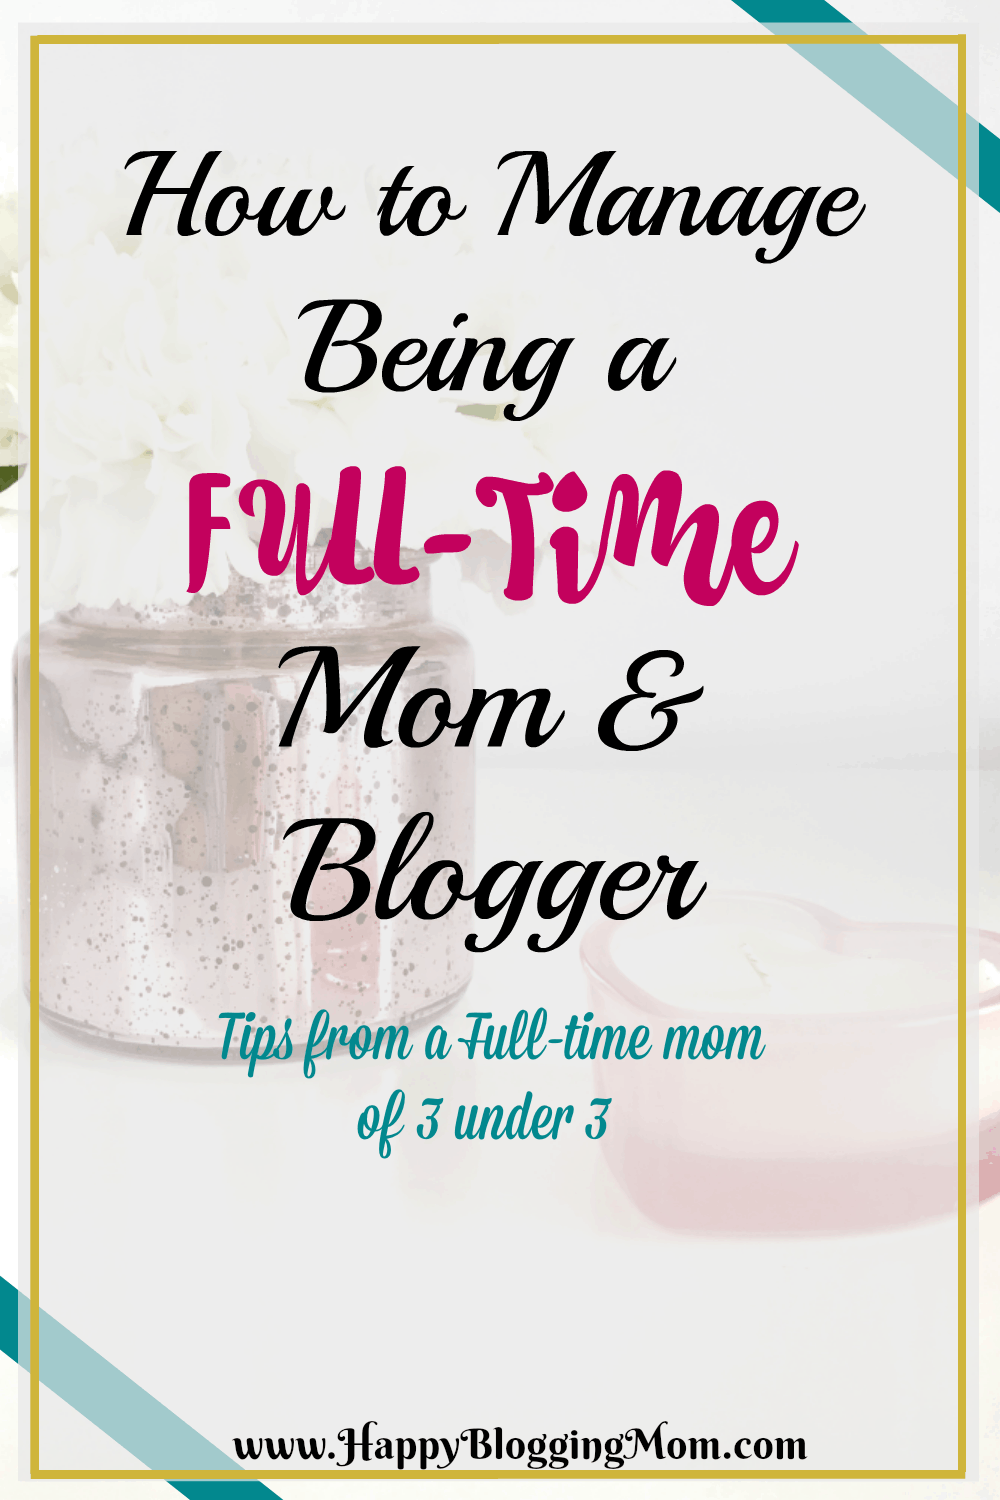 Full-Time mom and blogger